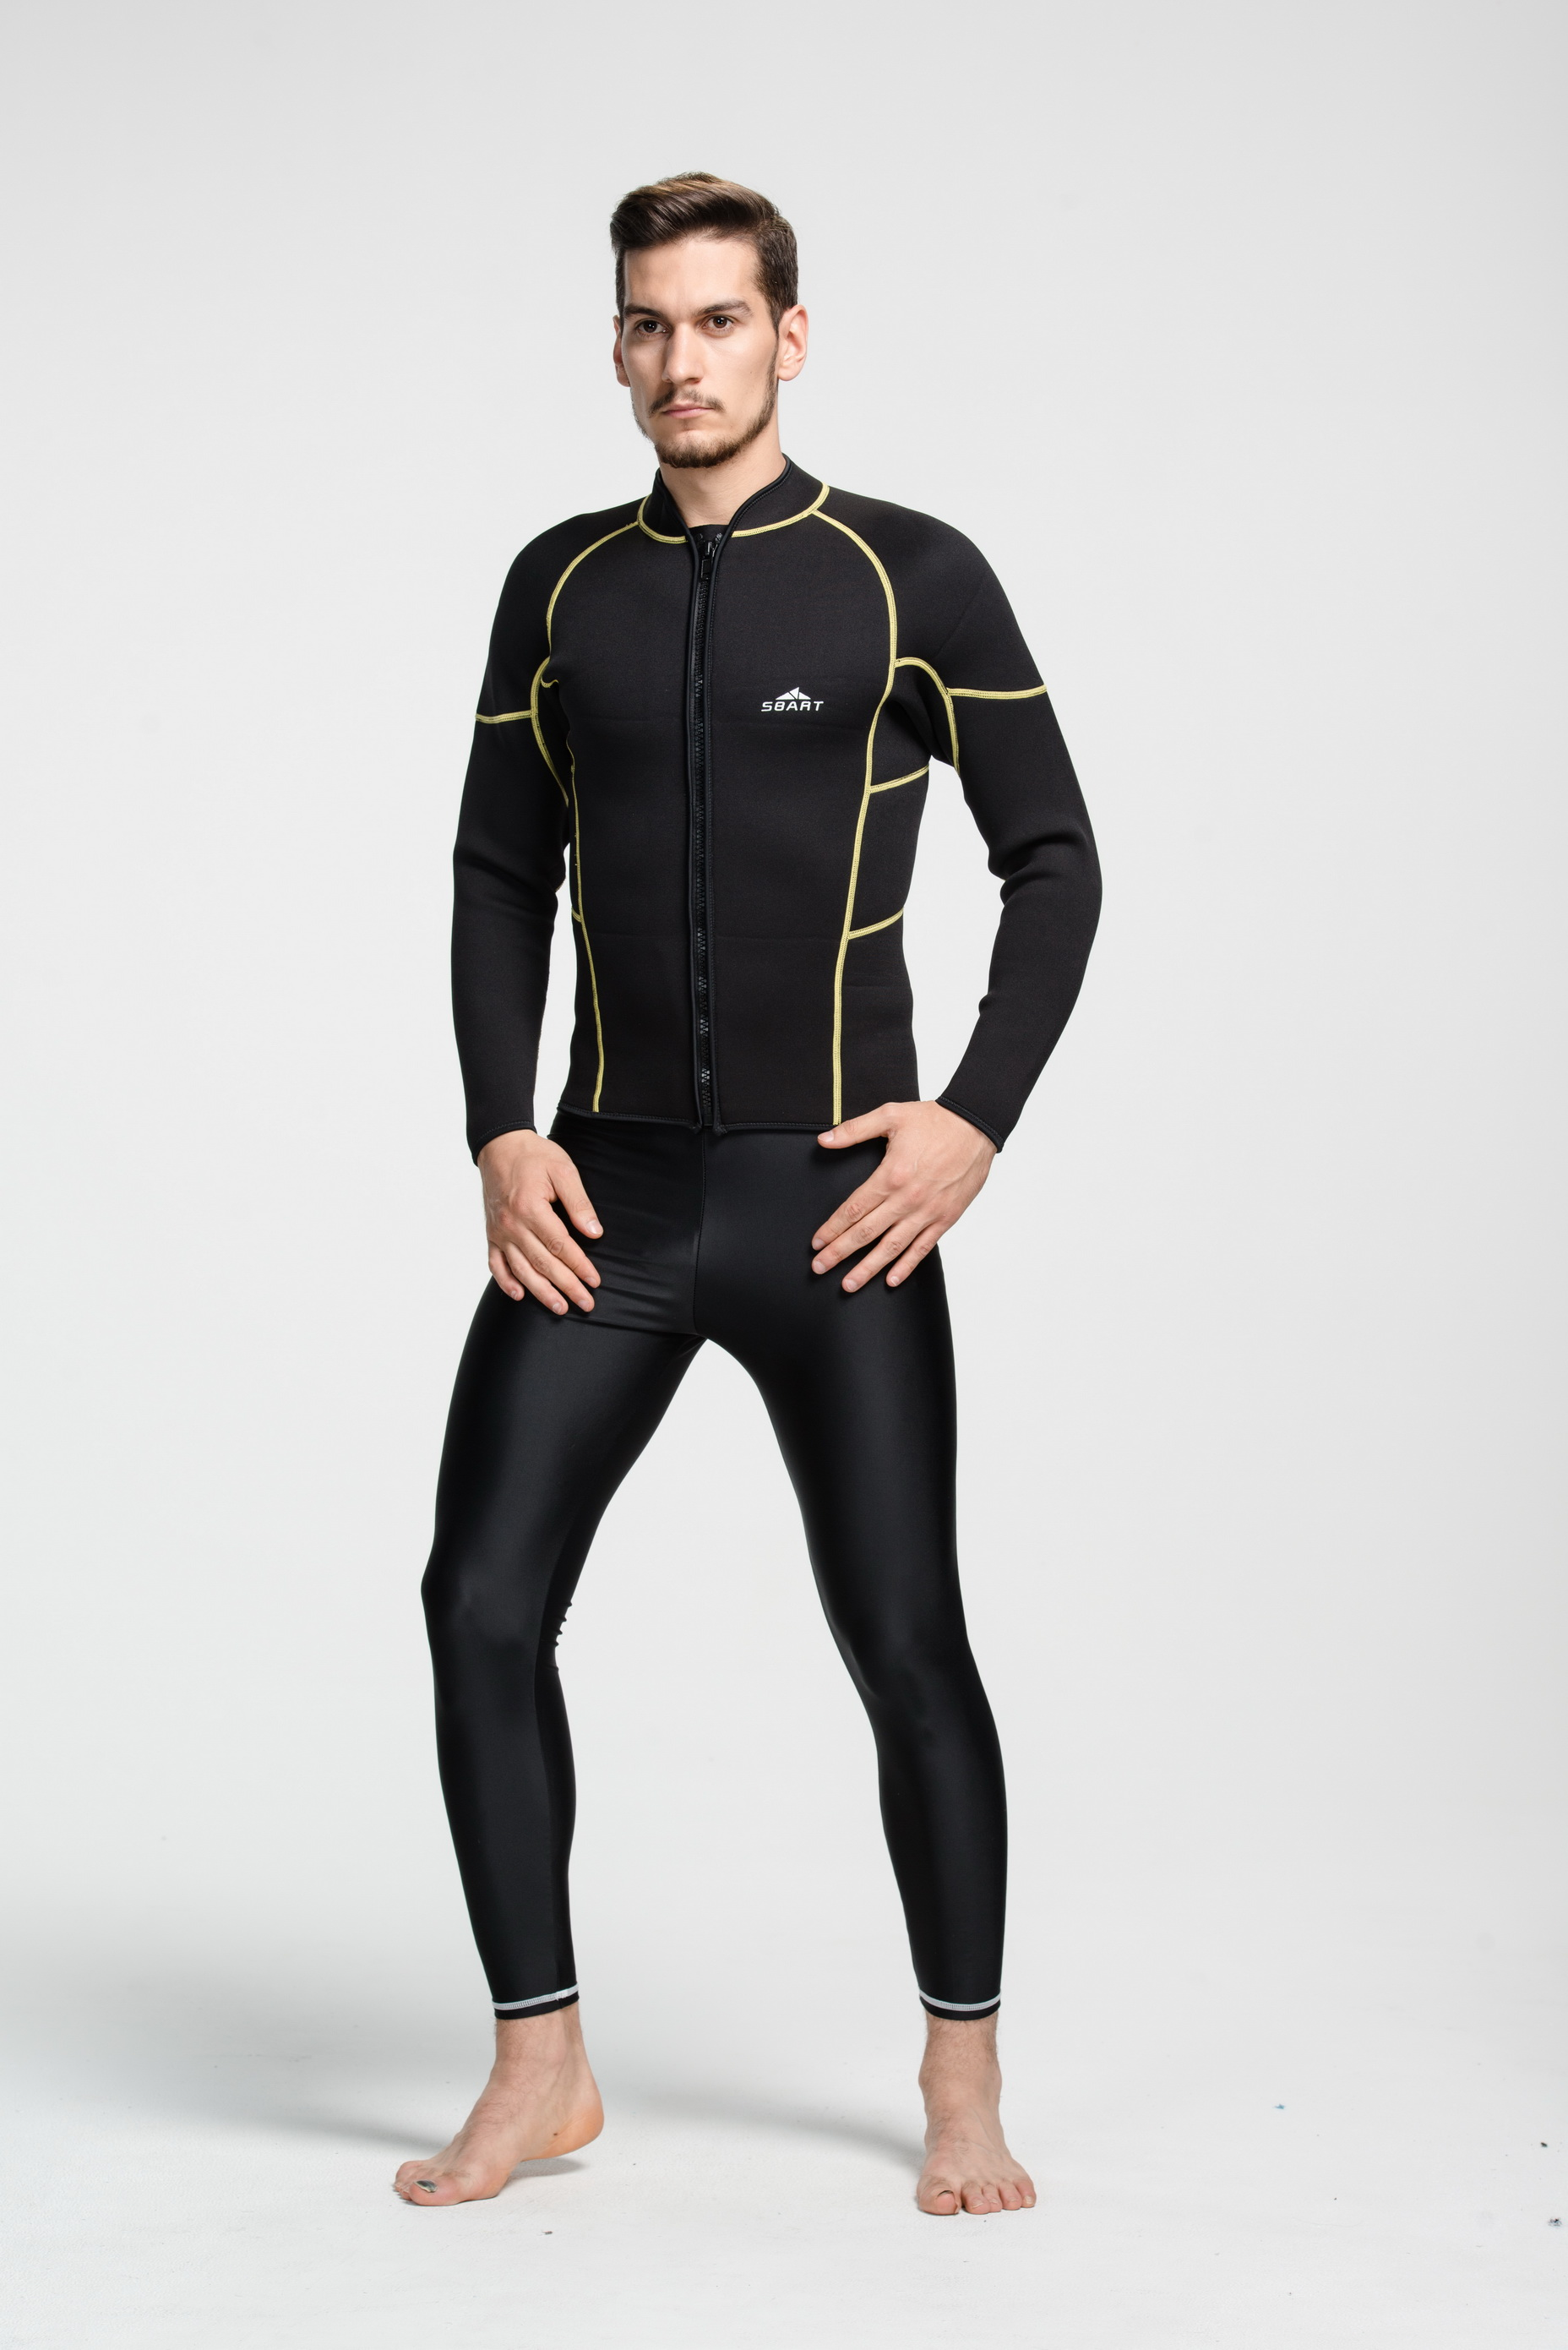 custom fishing factory surfing wetsuit